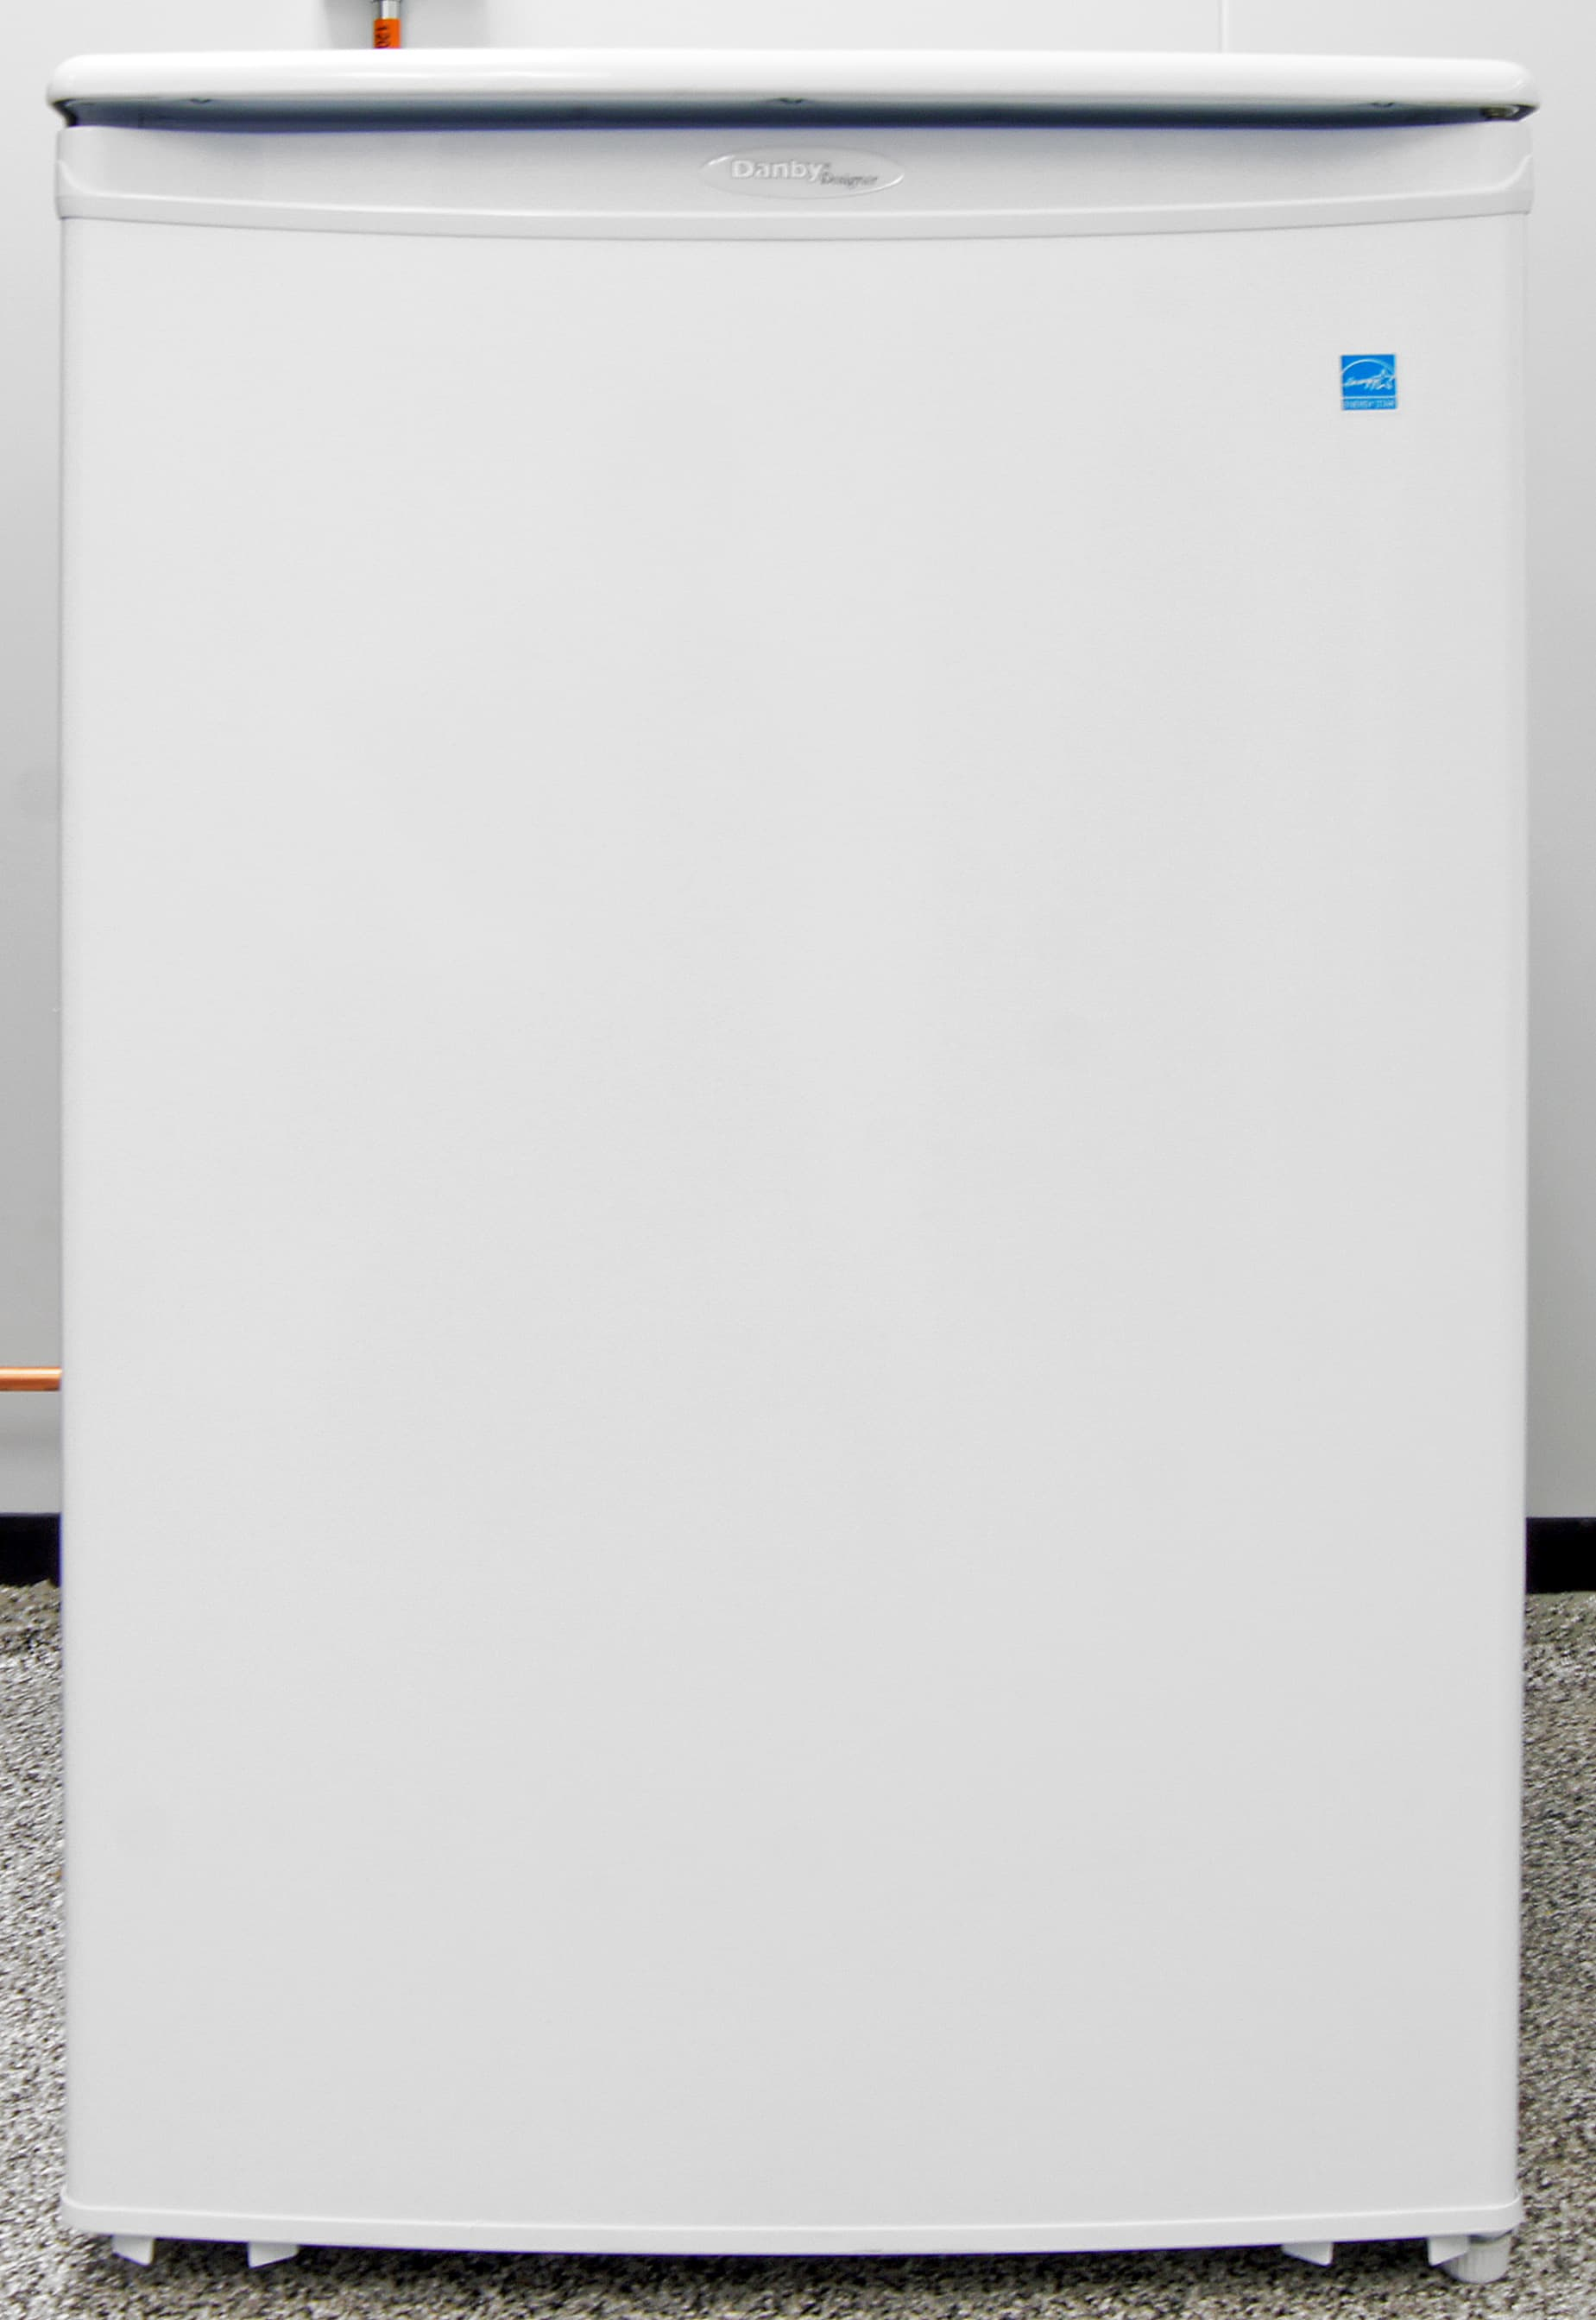 The glossy white door of the Danby DUF408WE is great at hiding fingerprints and other smudges.